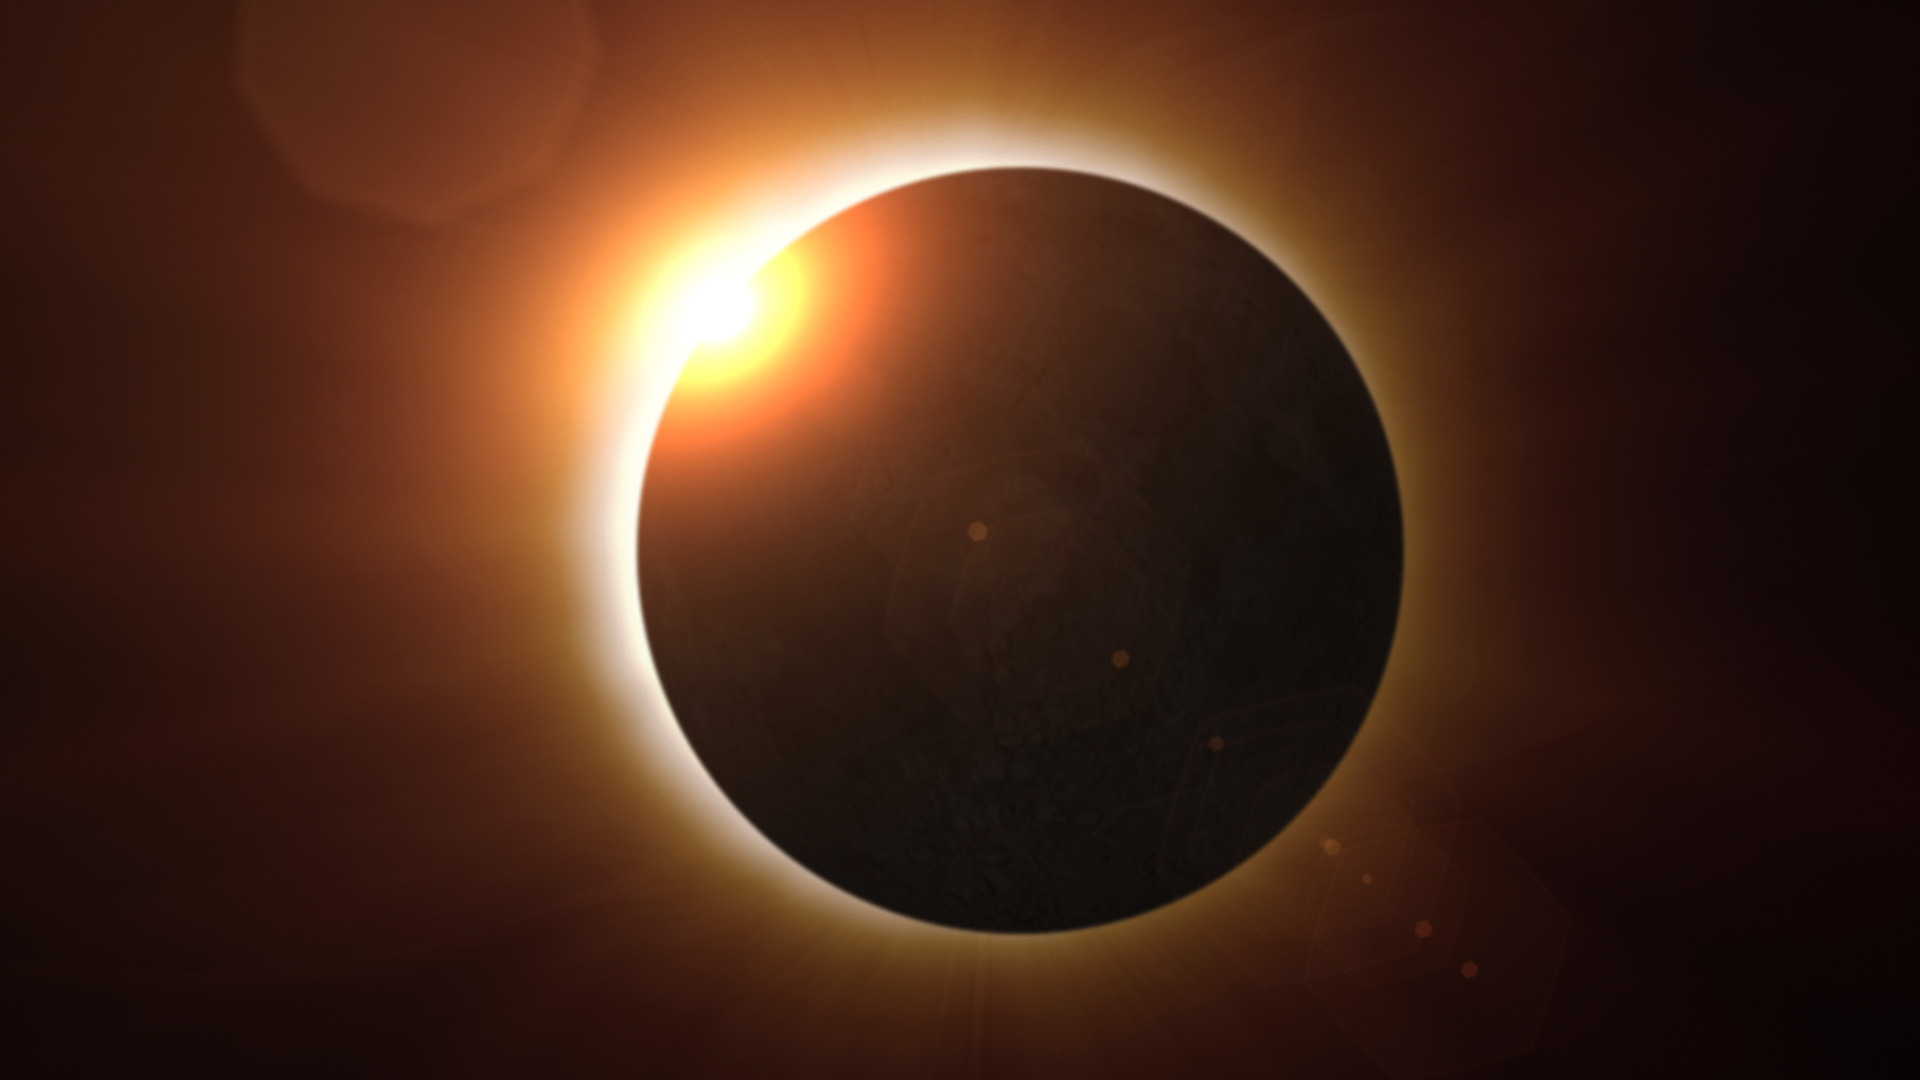 nasa viz total solar eclipse. Black Bedroom Furniture Sets. Home Design Ideas